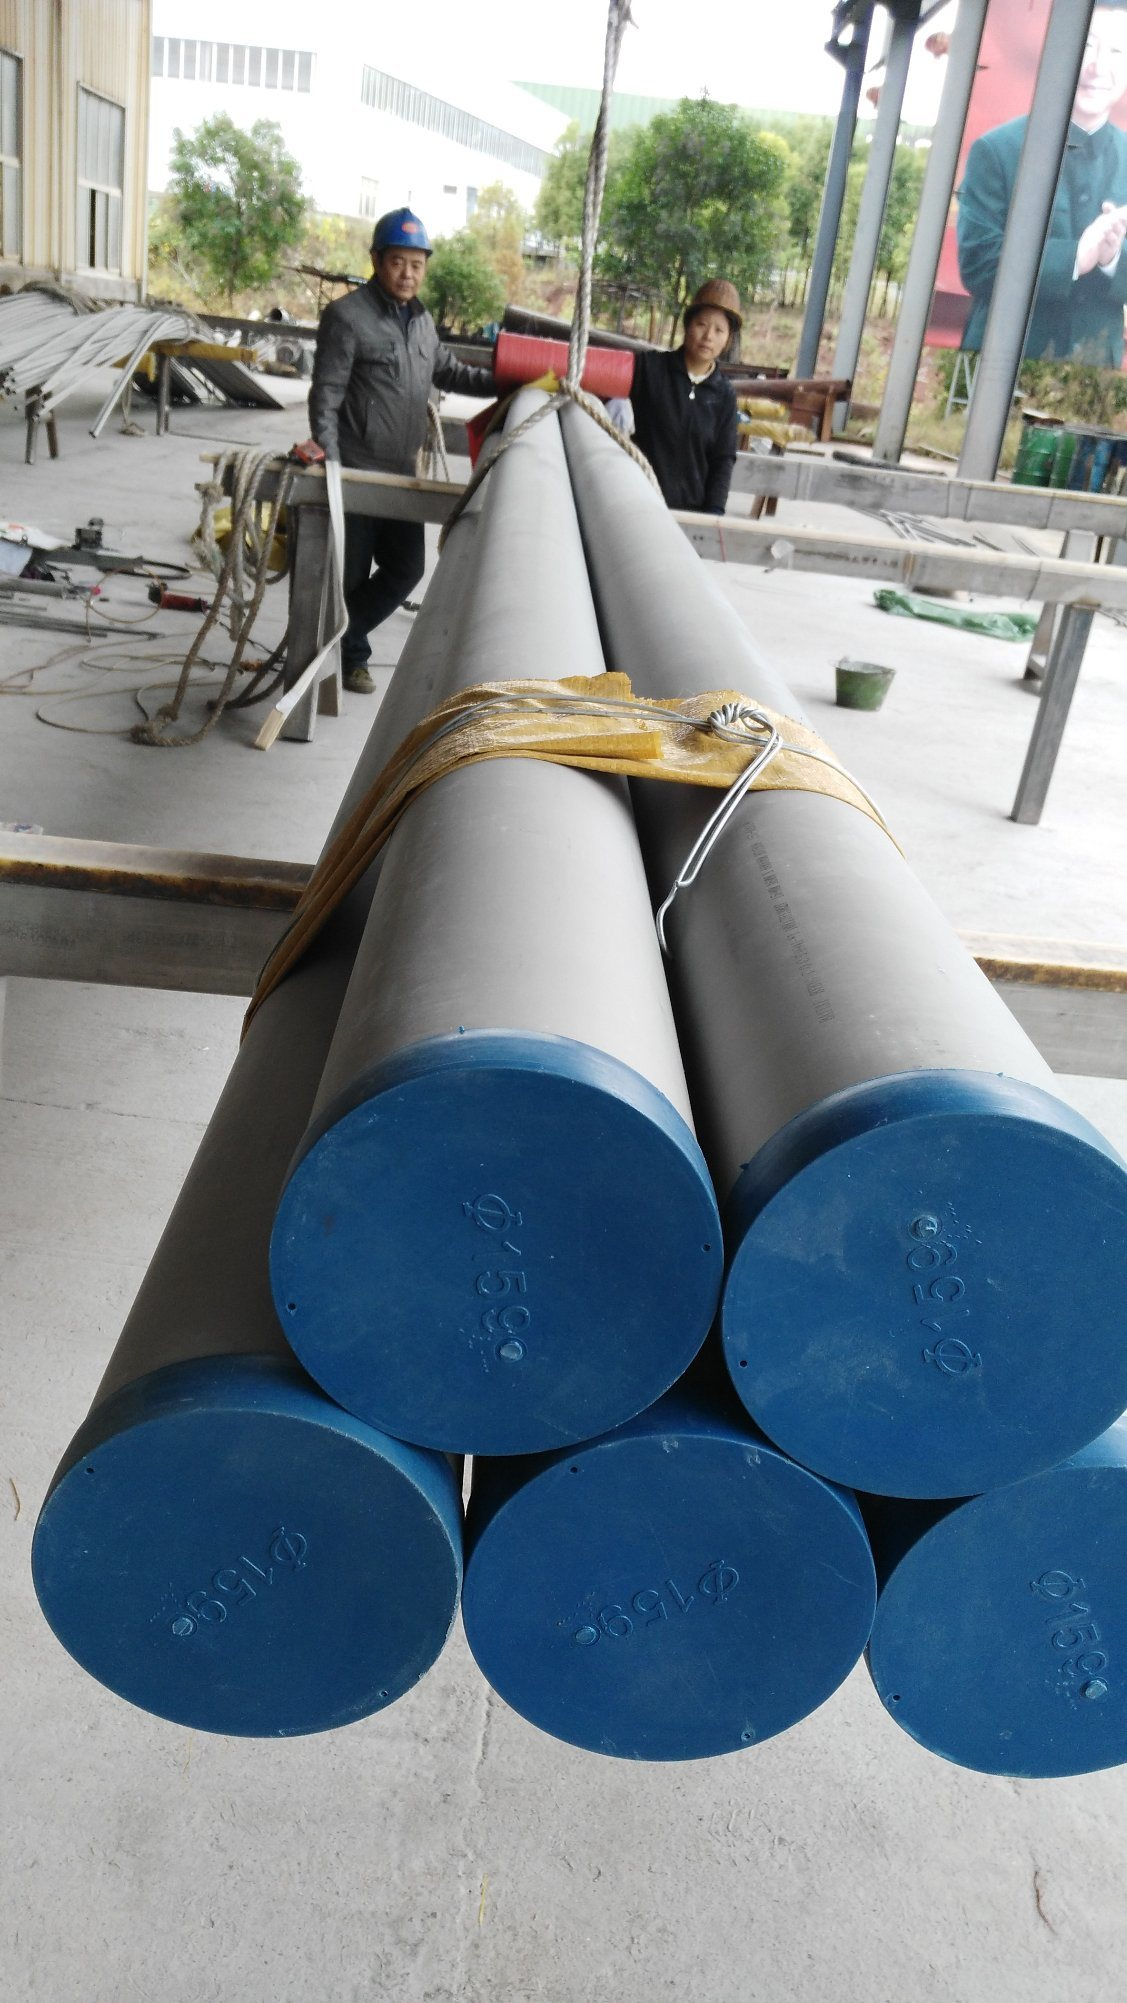 Tp321 ASTM A312 Stainless Steel Seamless Pipe with PED-TUV & ISO 9001 Certificate